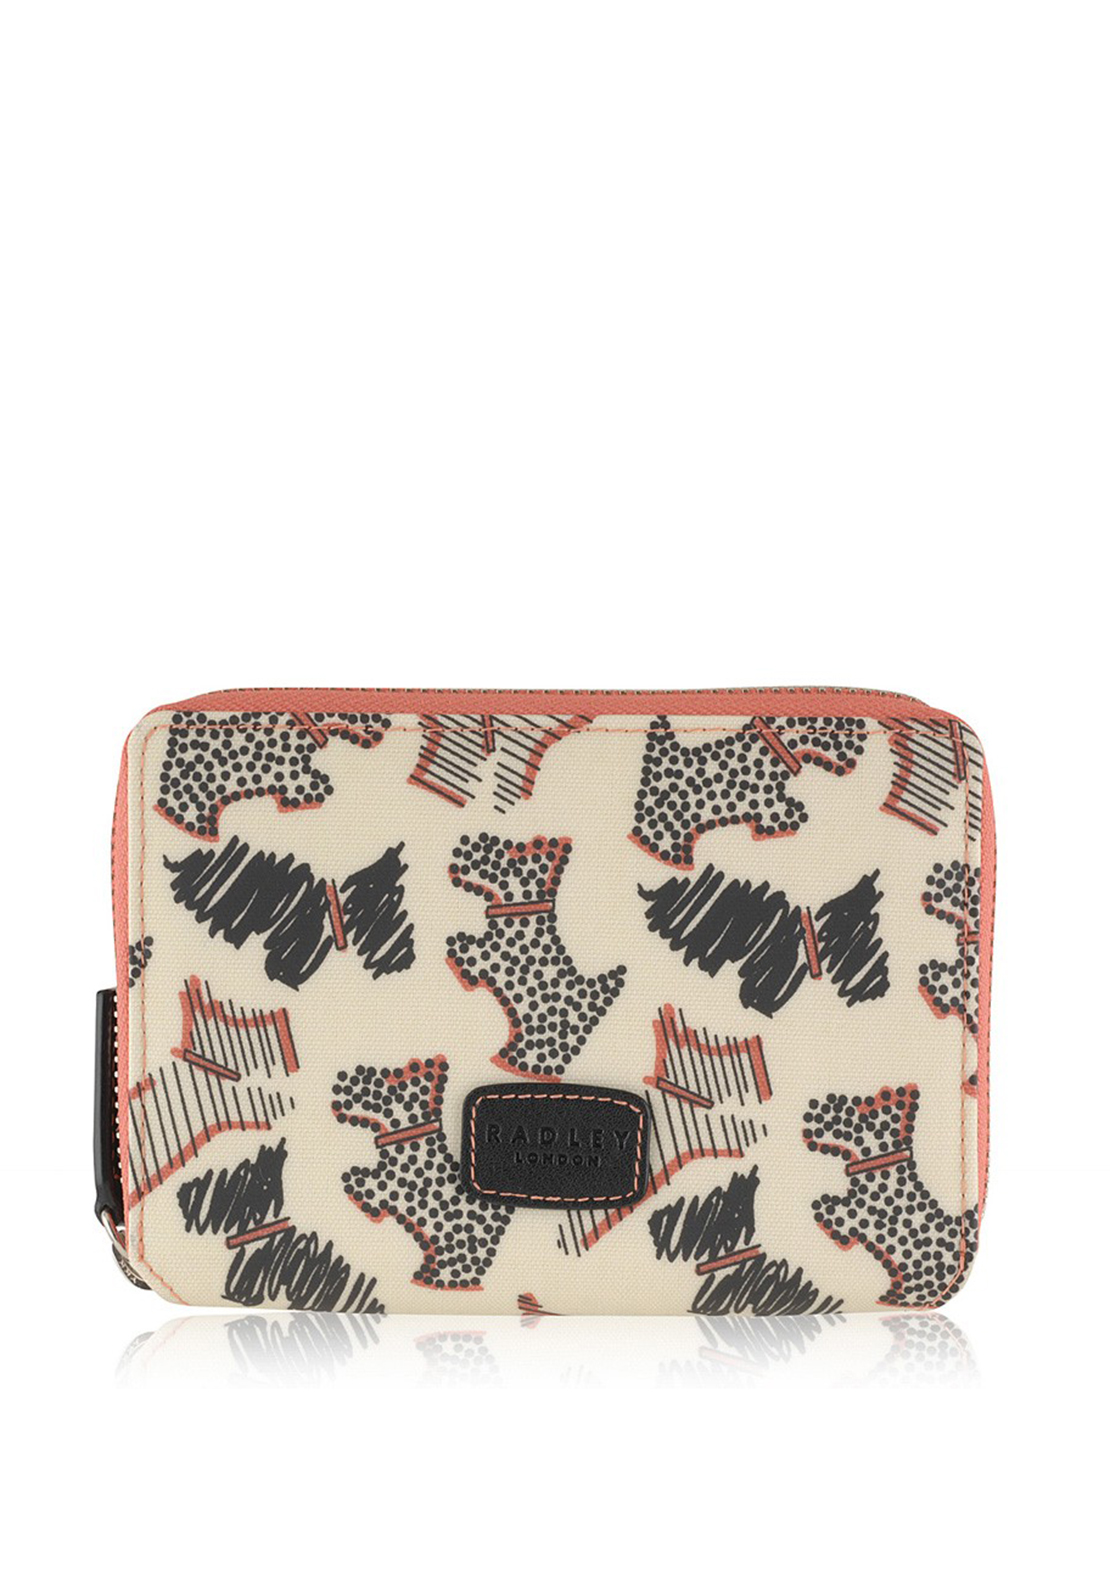 Radley Fleet Street Medium Zip Purse, Cream Multi